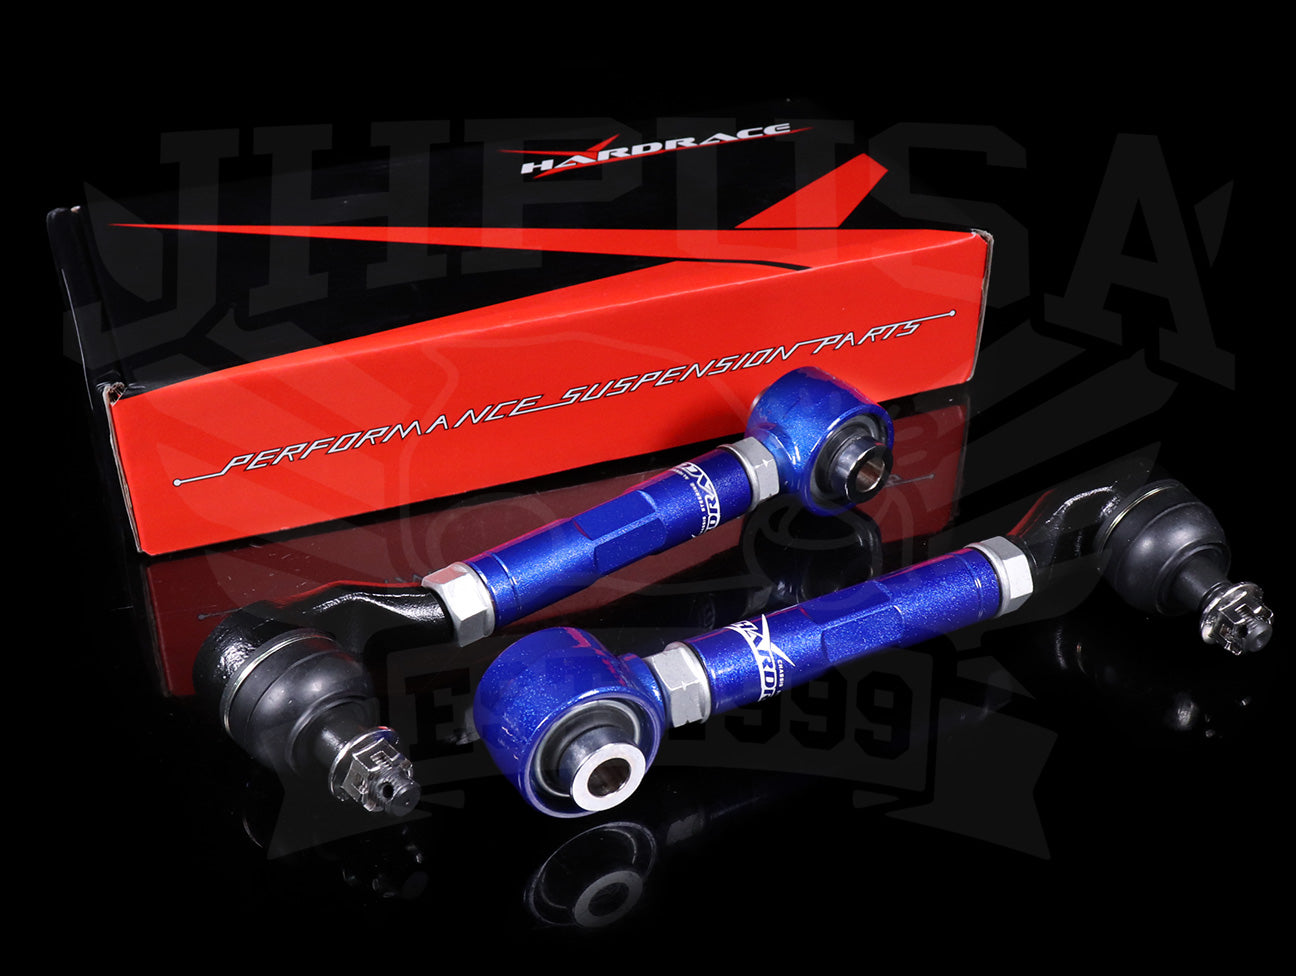 Hardrace Rear Camber Kit (Pillowball) - 04-08 TSX / 03-07 Accord